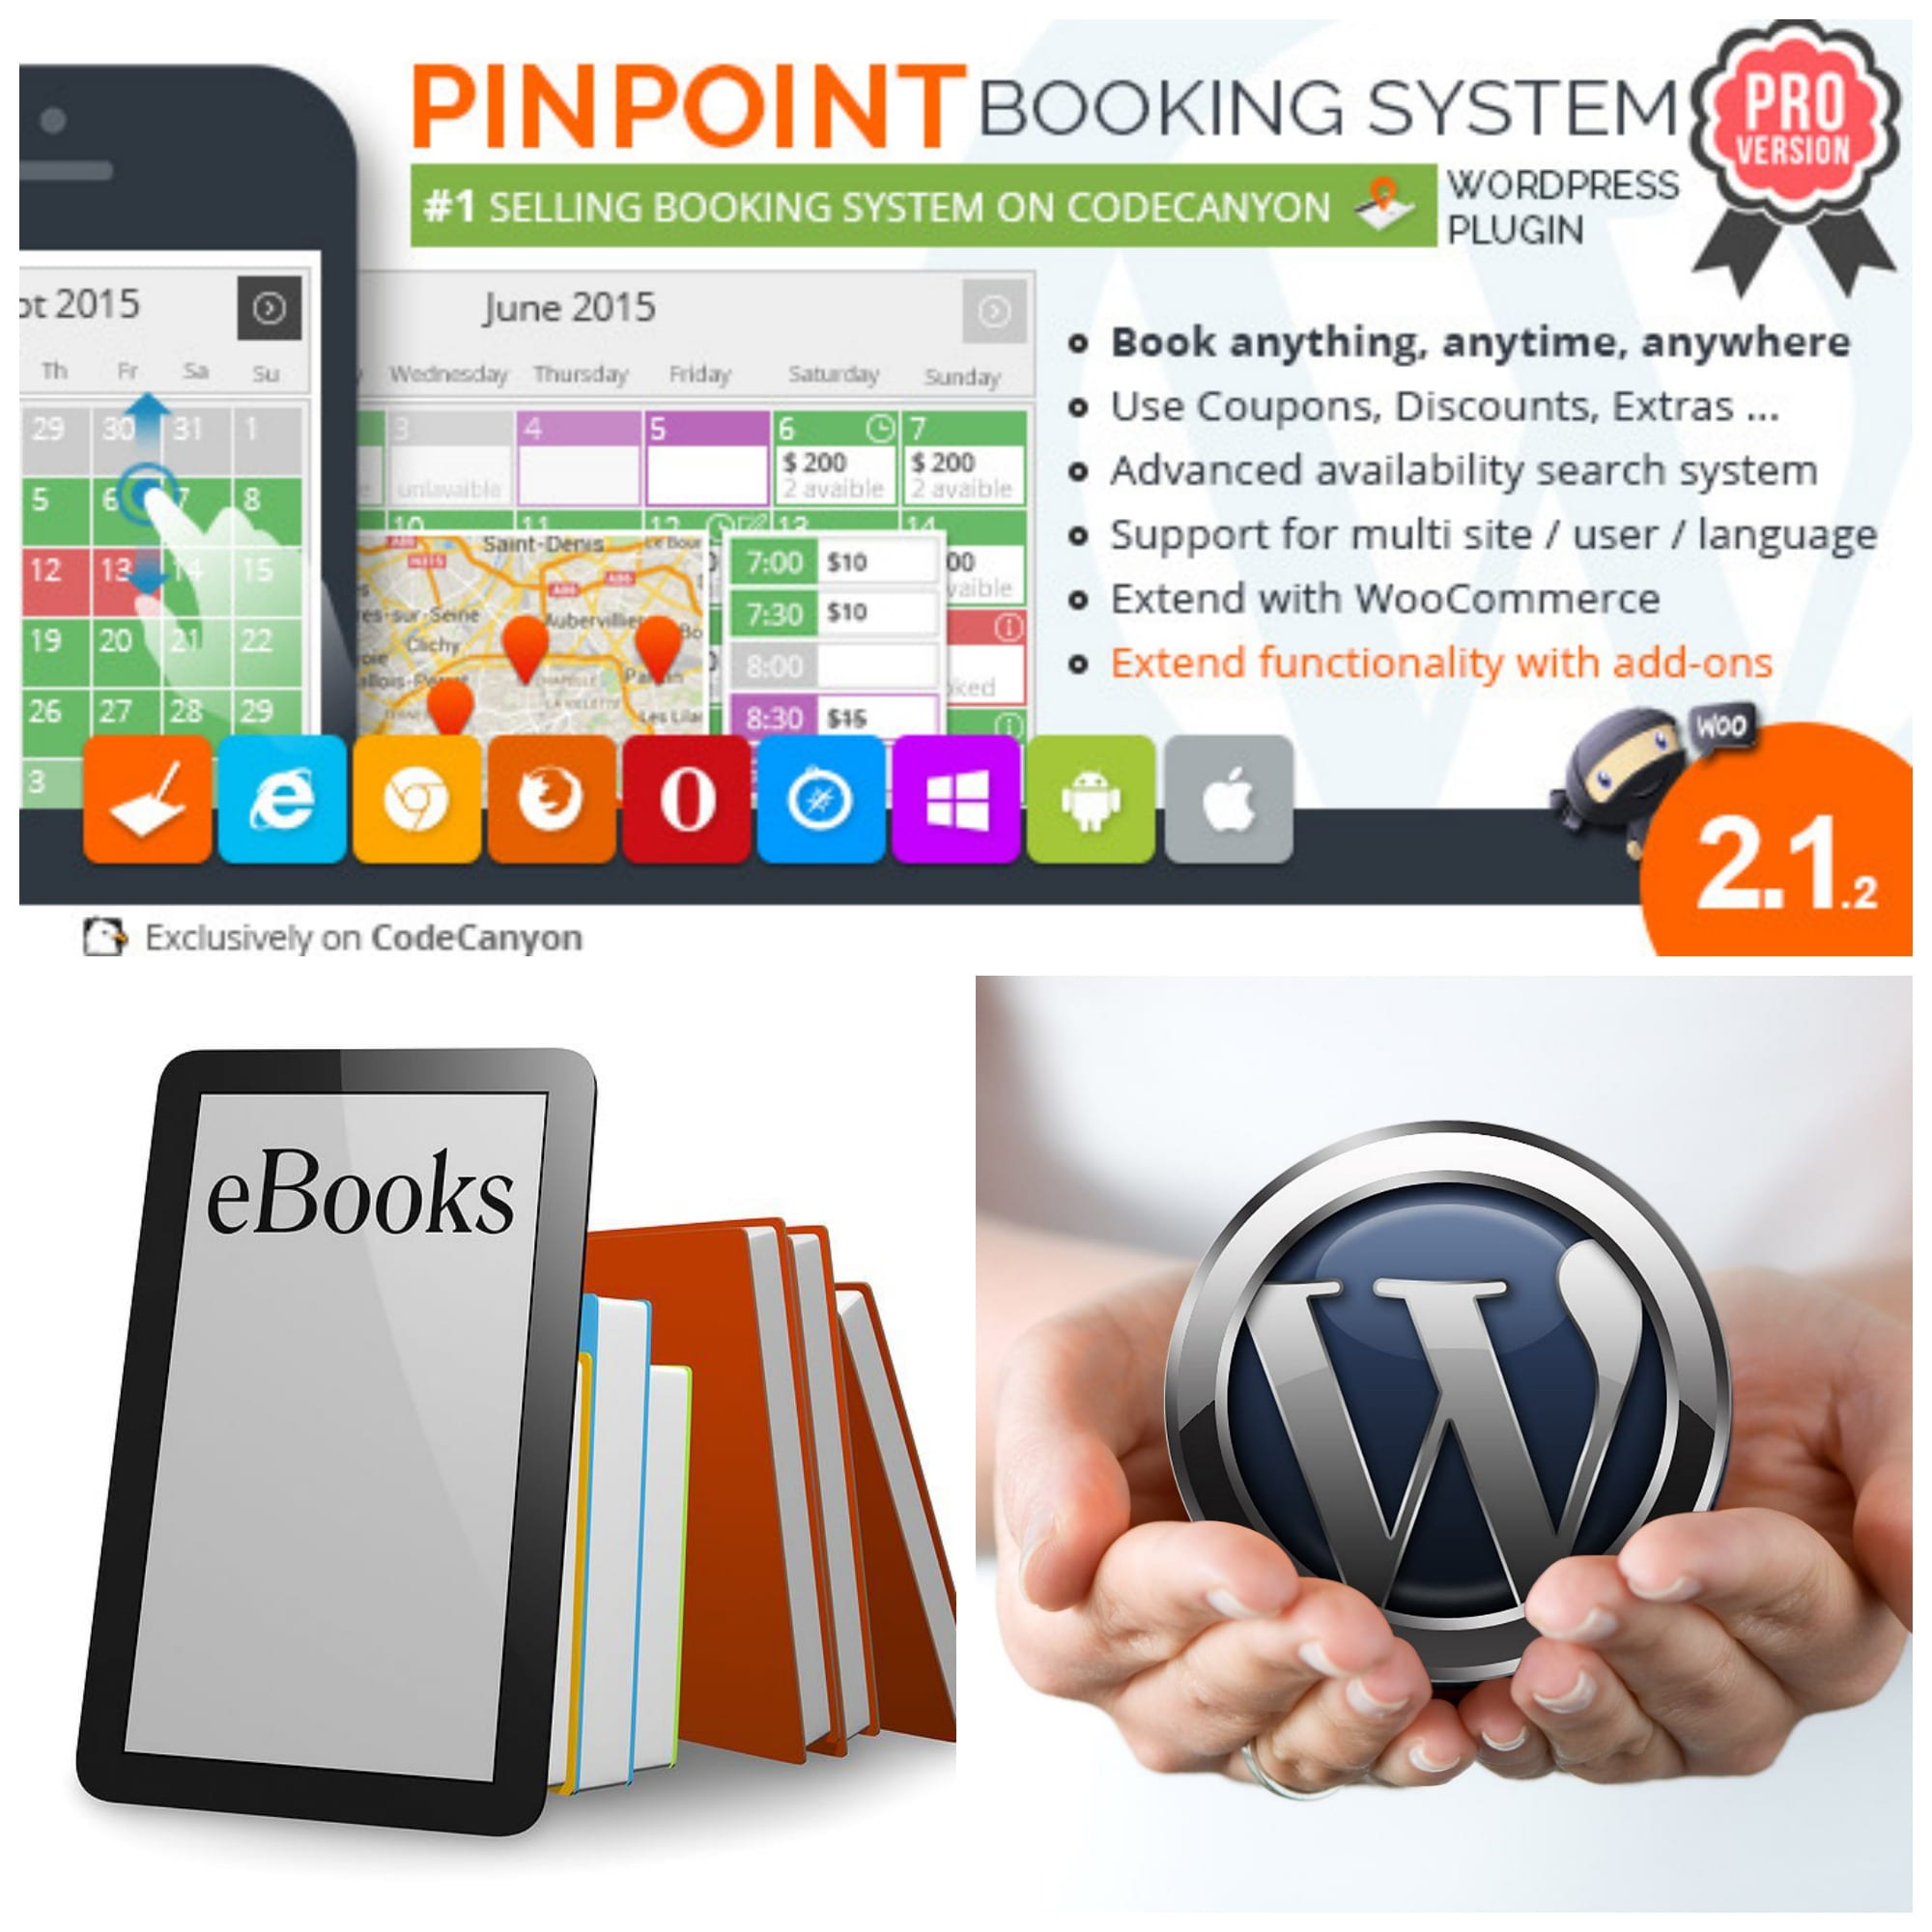 Venta De Libros Digitales Pinpoint Booking System Pro Plugin Para La Venta De Ebooks